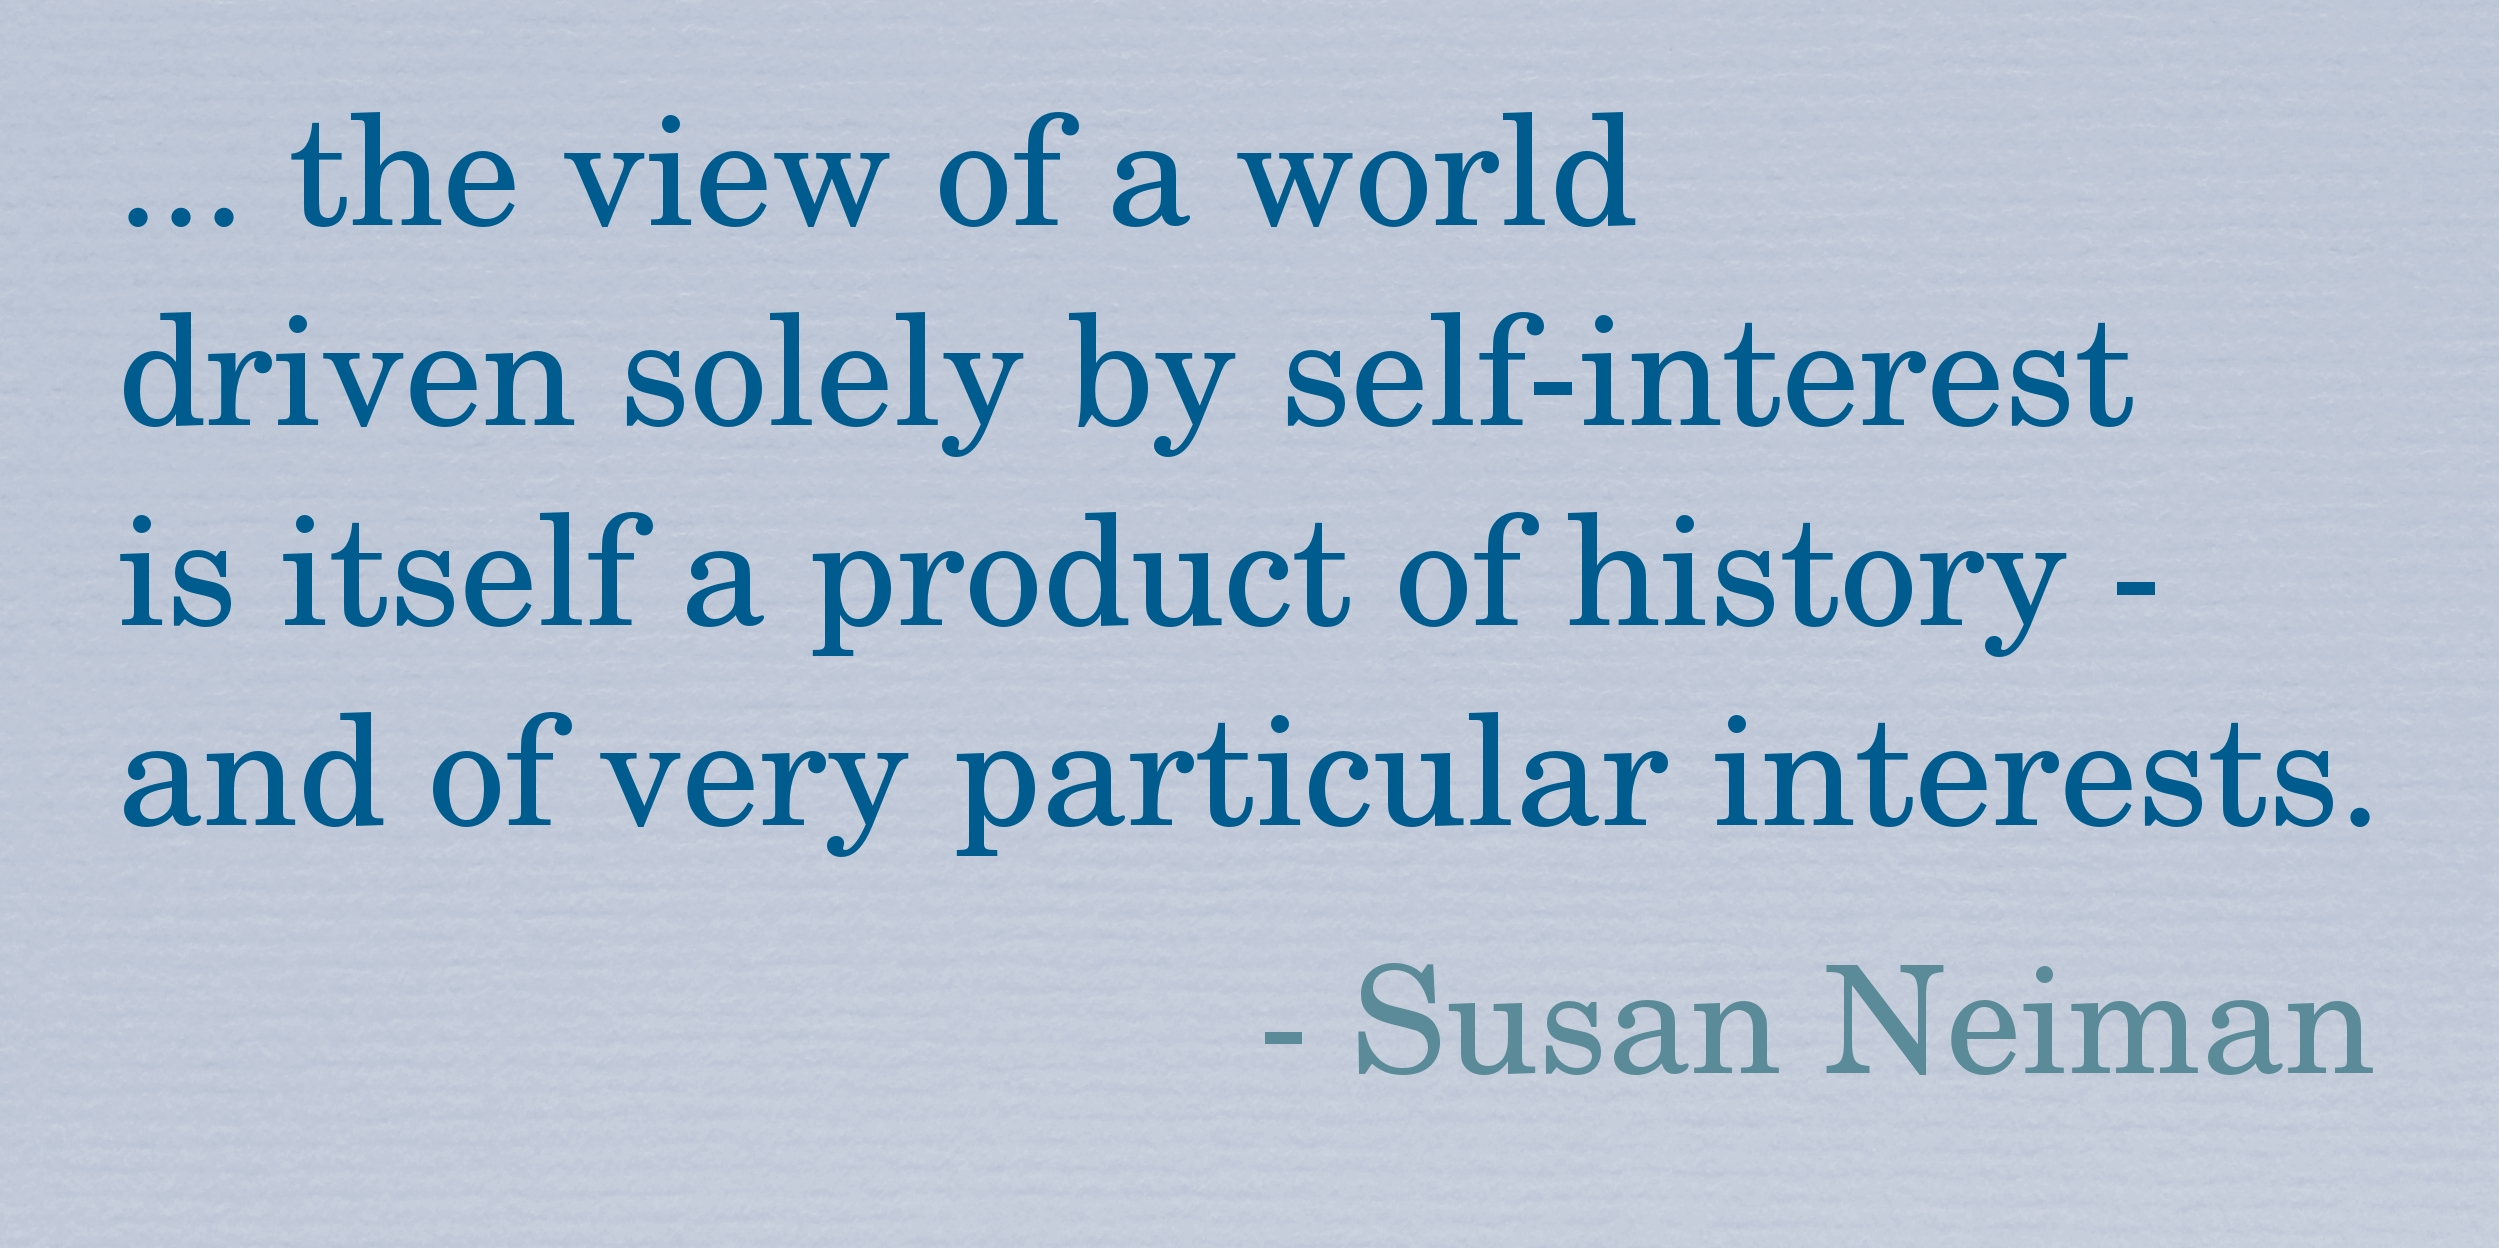 """Quote: """"... the view of a world driven solely by self-interest is itself a product of history - and of very particular interests."""" - Susan Neiman."""